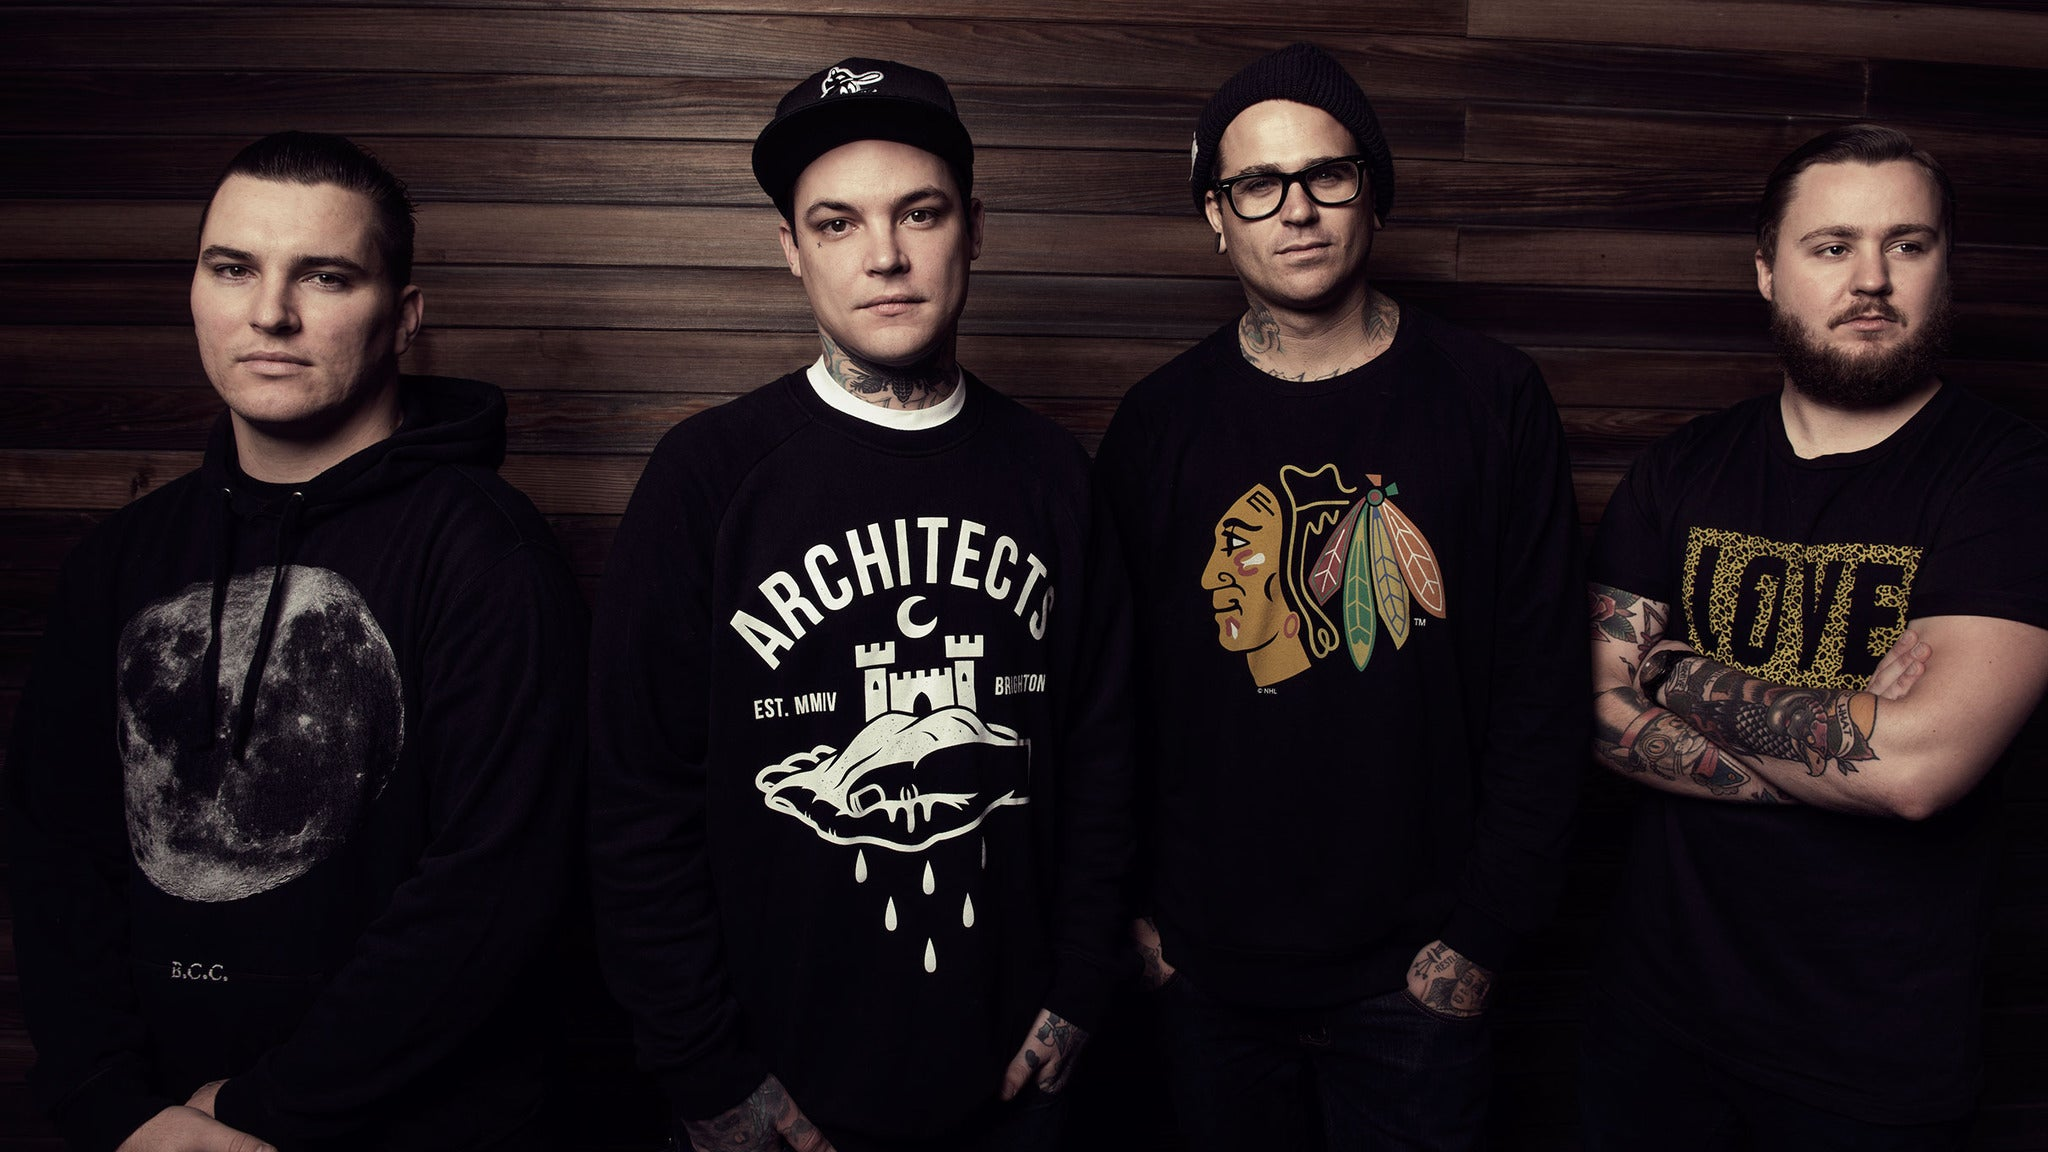 The Amity Affliction & Senses Fail - Misery Will Find You Tour